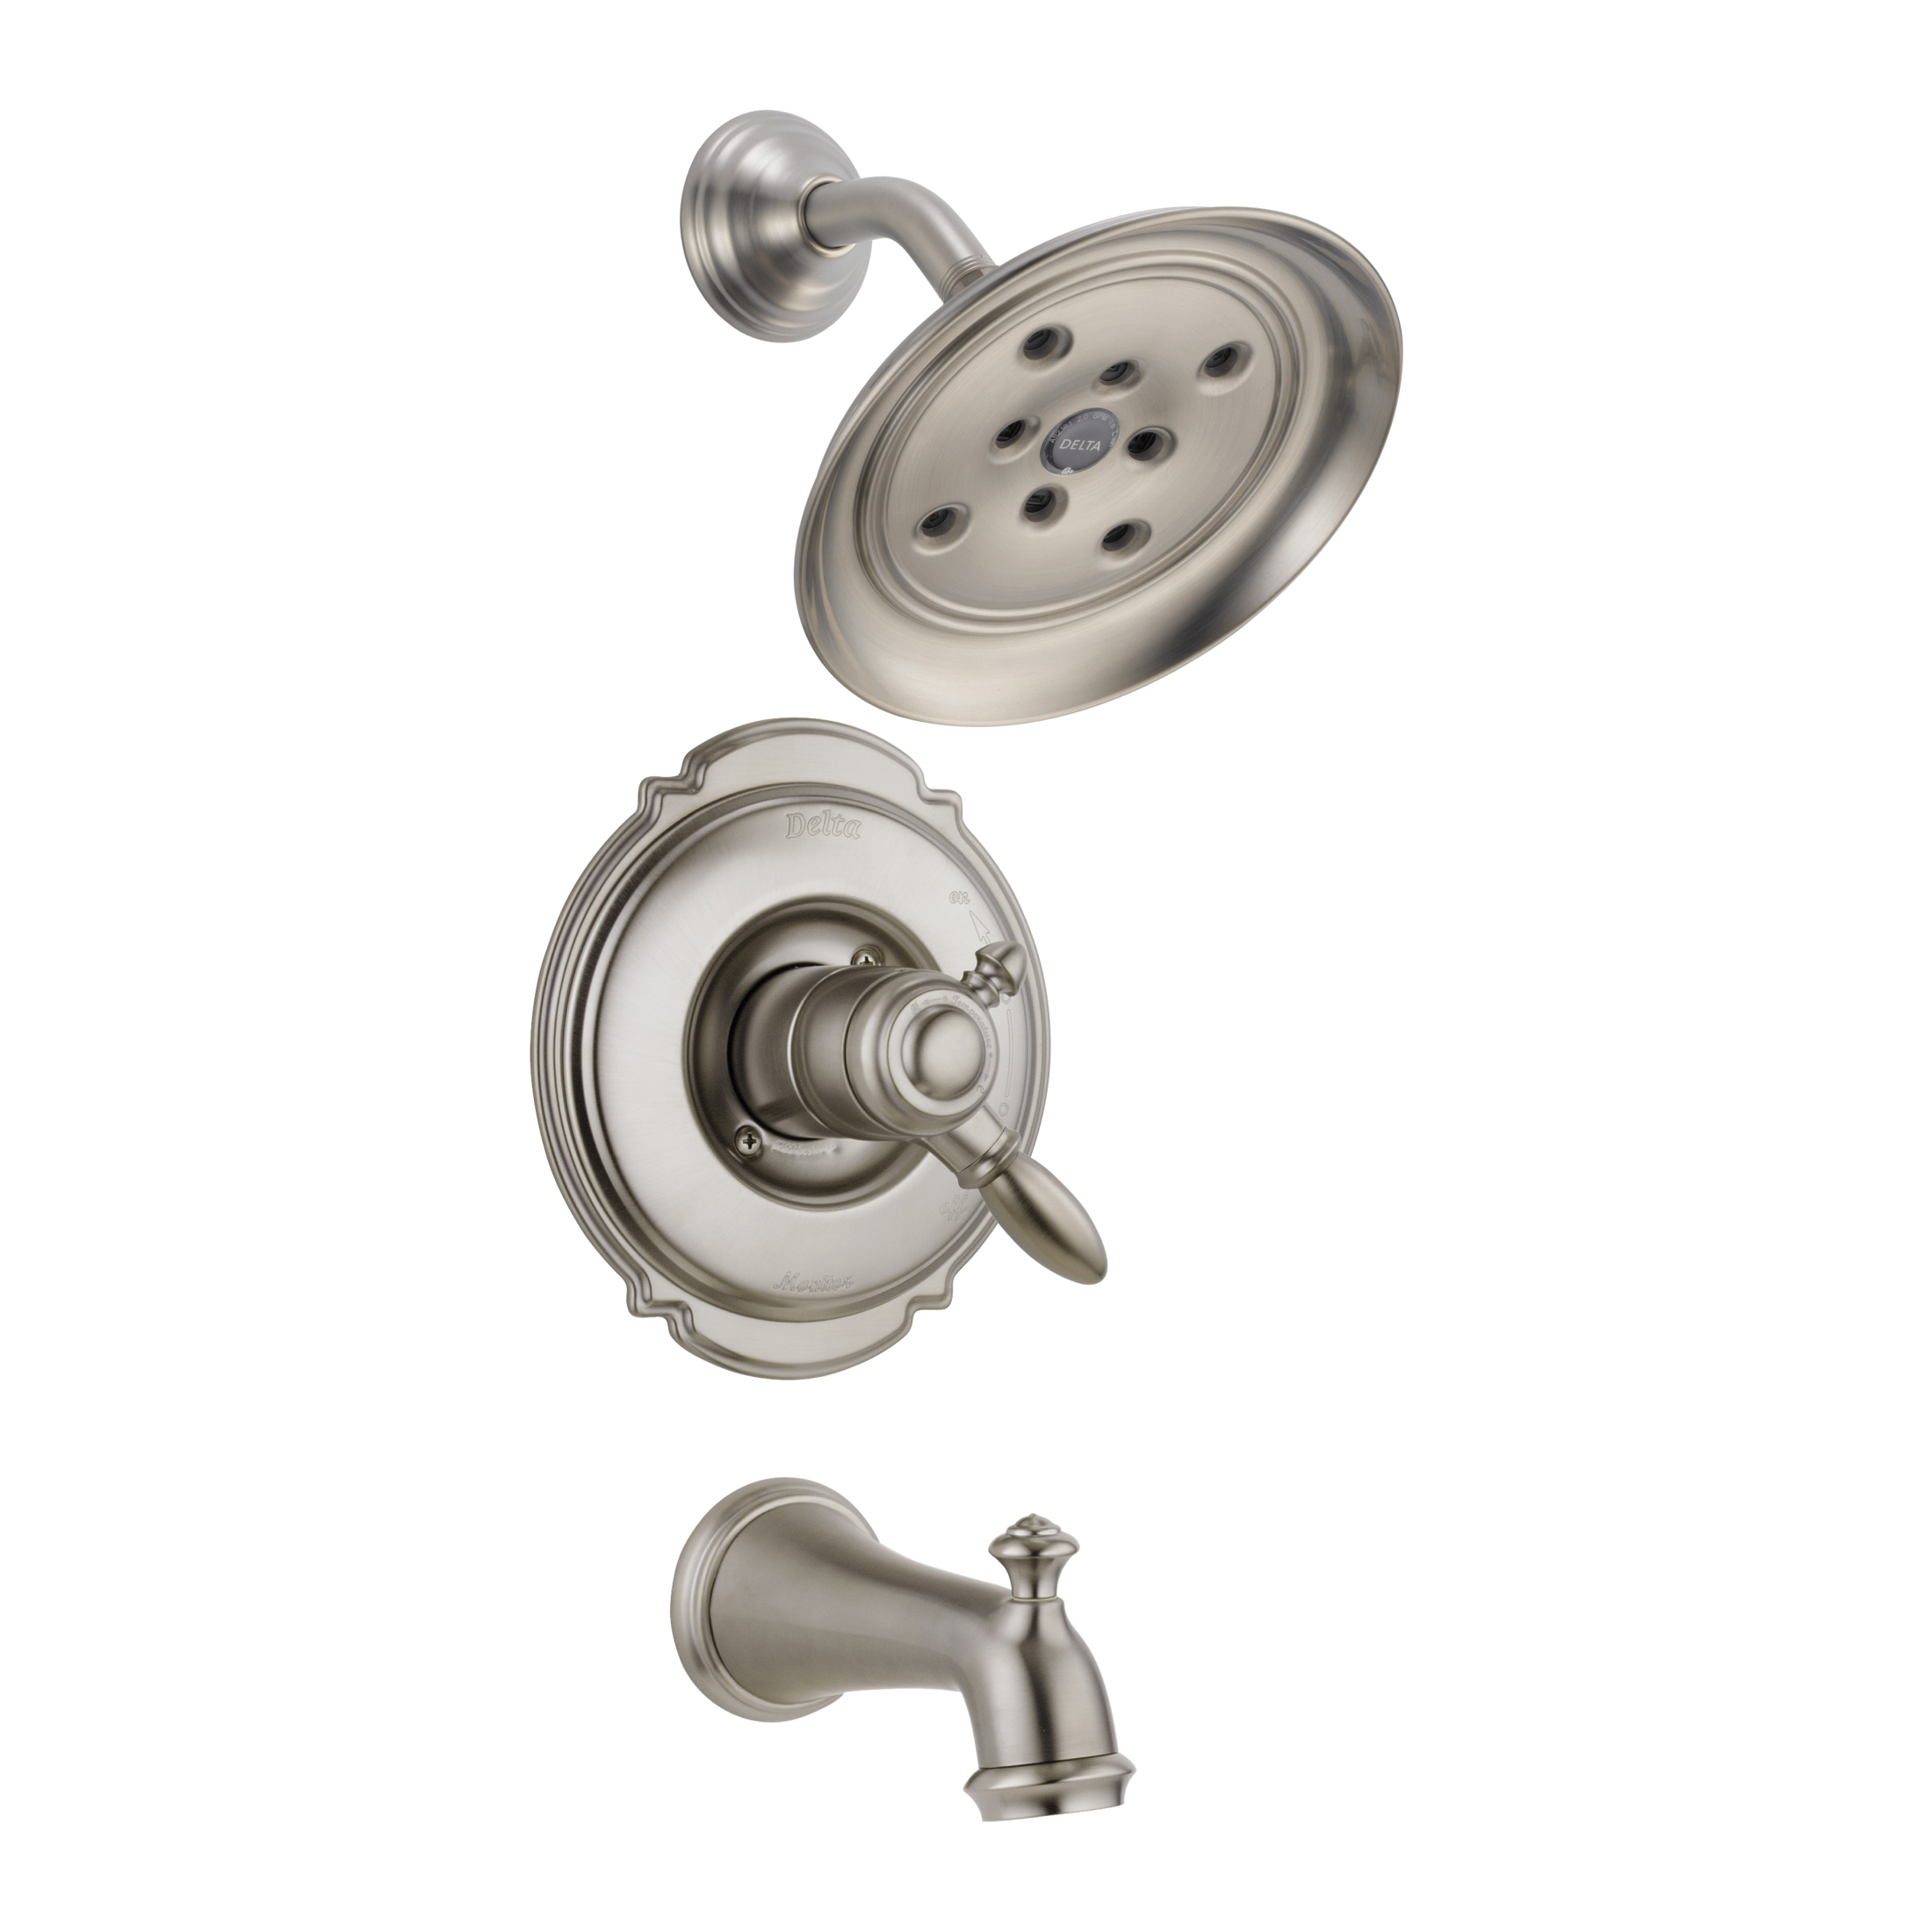 DELTA® T17455-SSH2O Monitor® 17 Tub and Shower Faucet Trim, 1.75 gpm Shower, Hand Shower Yes/No: No, Brilliance® Stainless Steel